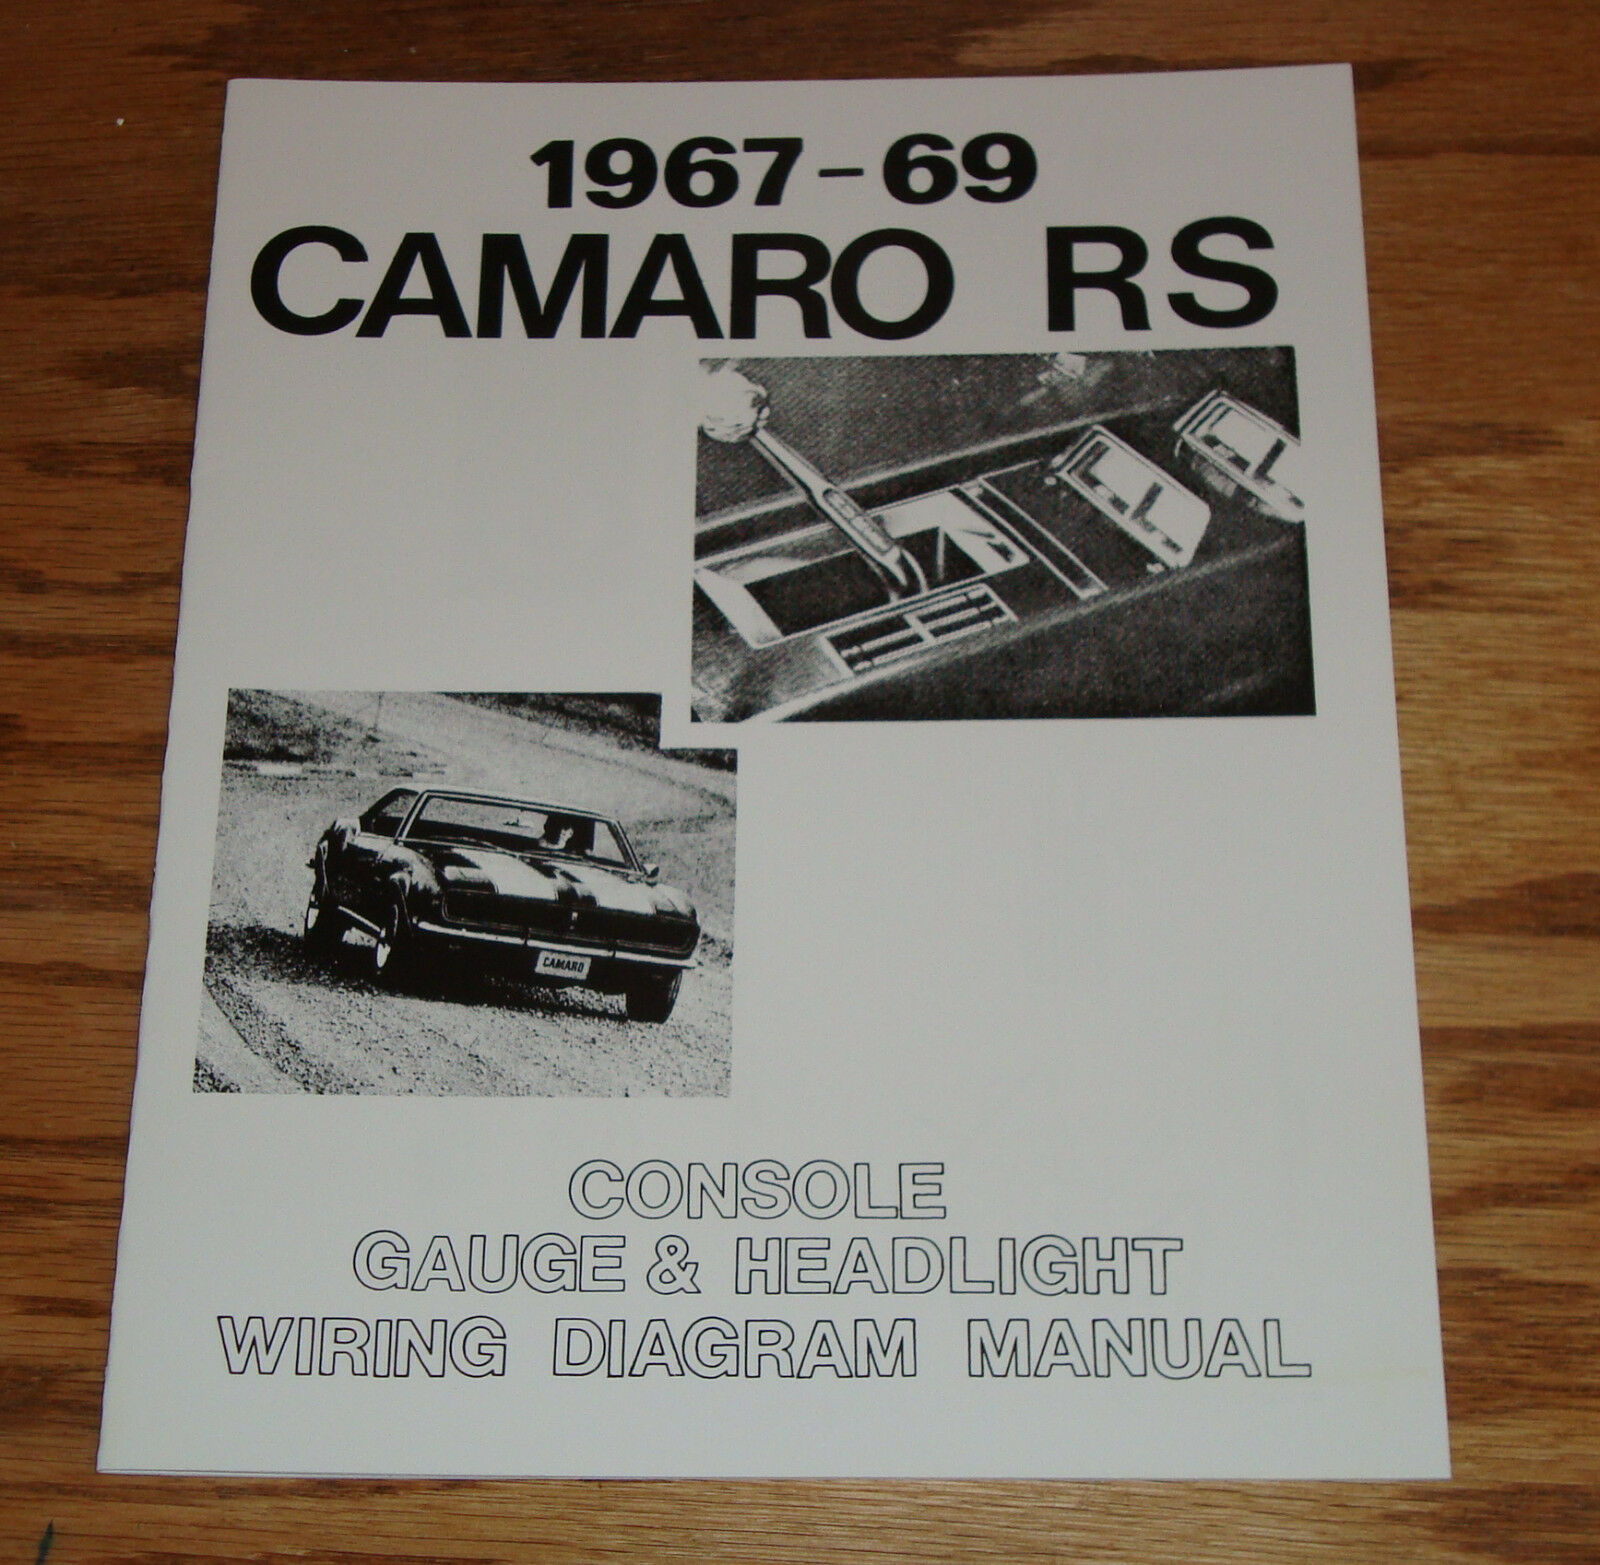 1967 1968 1969 Chevrolet Camaro Rs Wiring Diagram Manual 67 68 69 Chevy Ii 1 Of 1only 2 Available